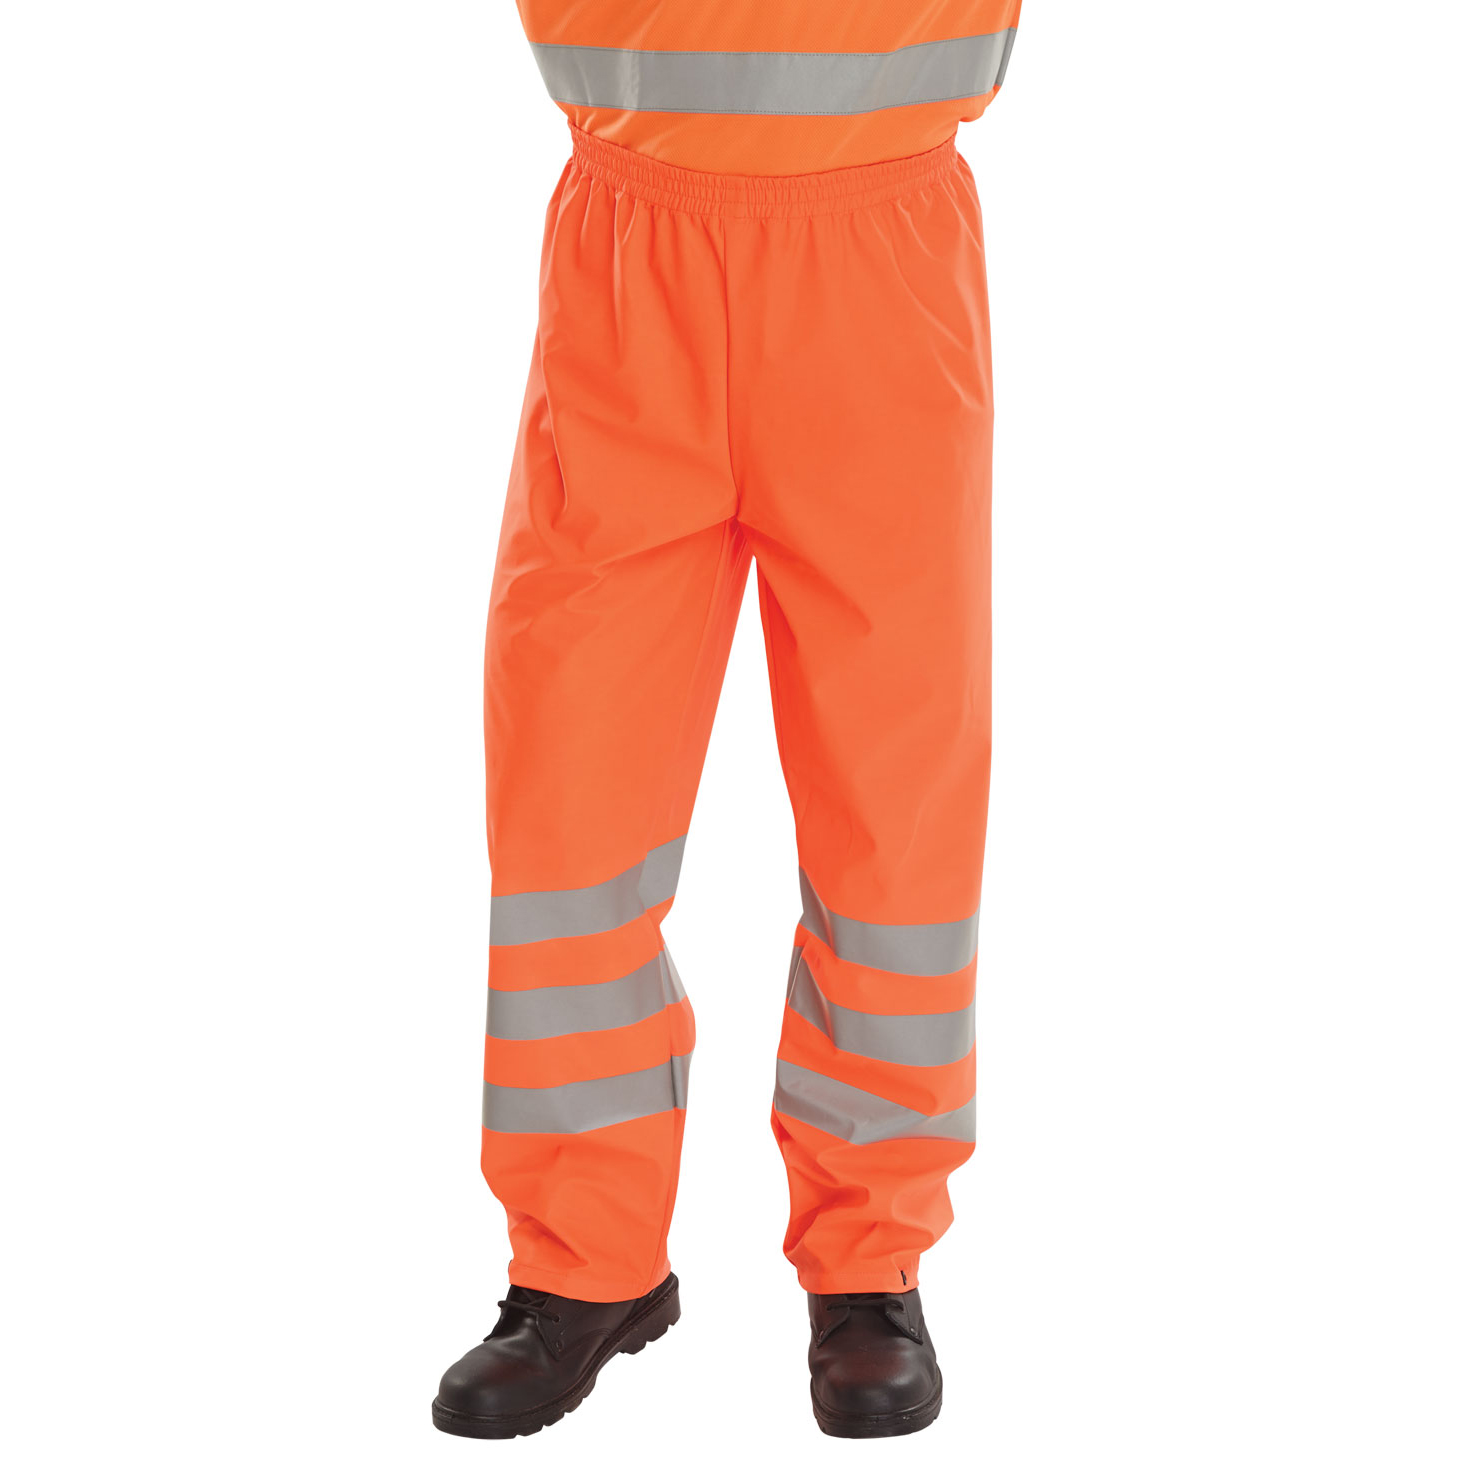 BSeen Over Trousers PU Hi-Vis Reflective 4XL Orange Ref PUT471OR4XL *Up to 3 Day Leadtime*